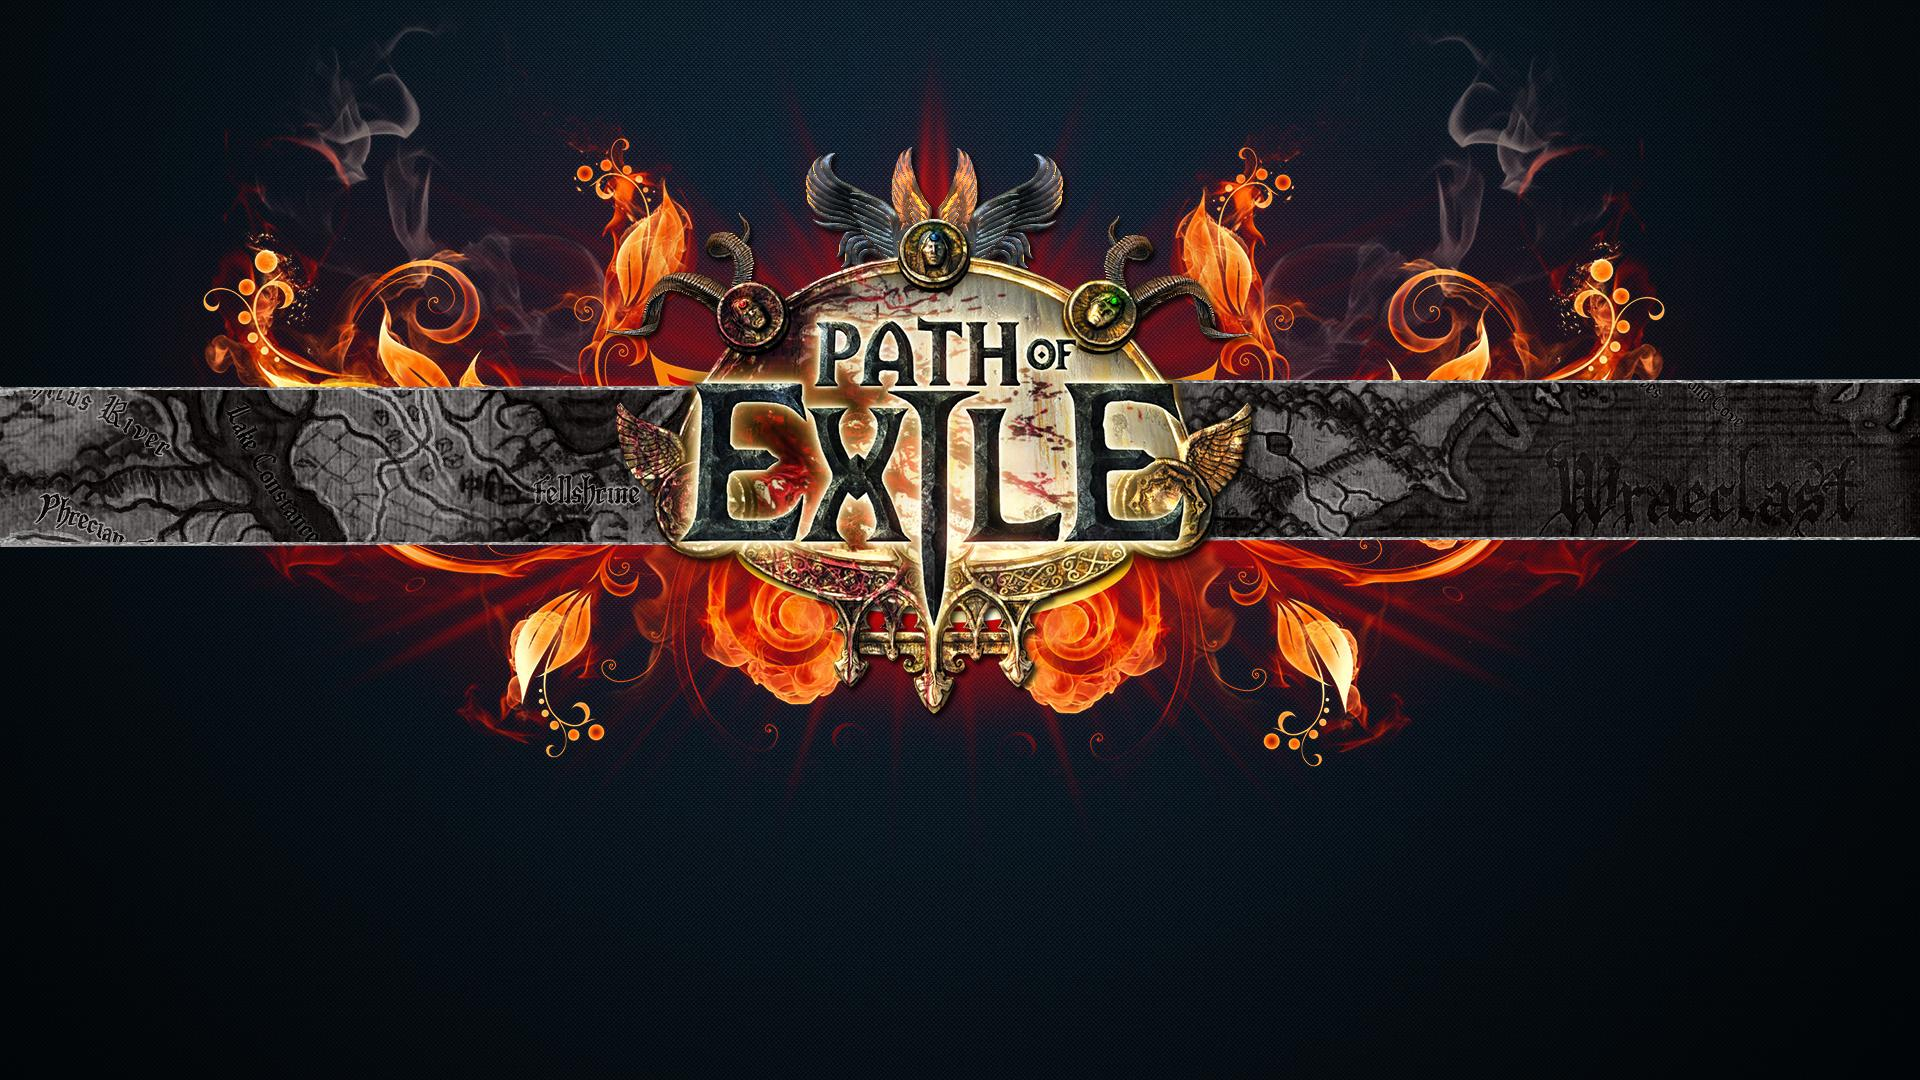 Path Of Exile Wallpaper: 15 Path Of Exile HD Wallpapers